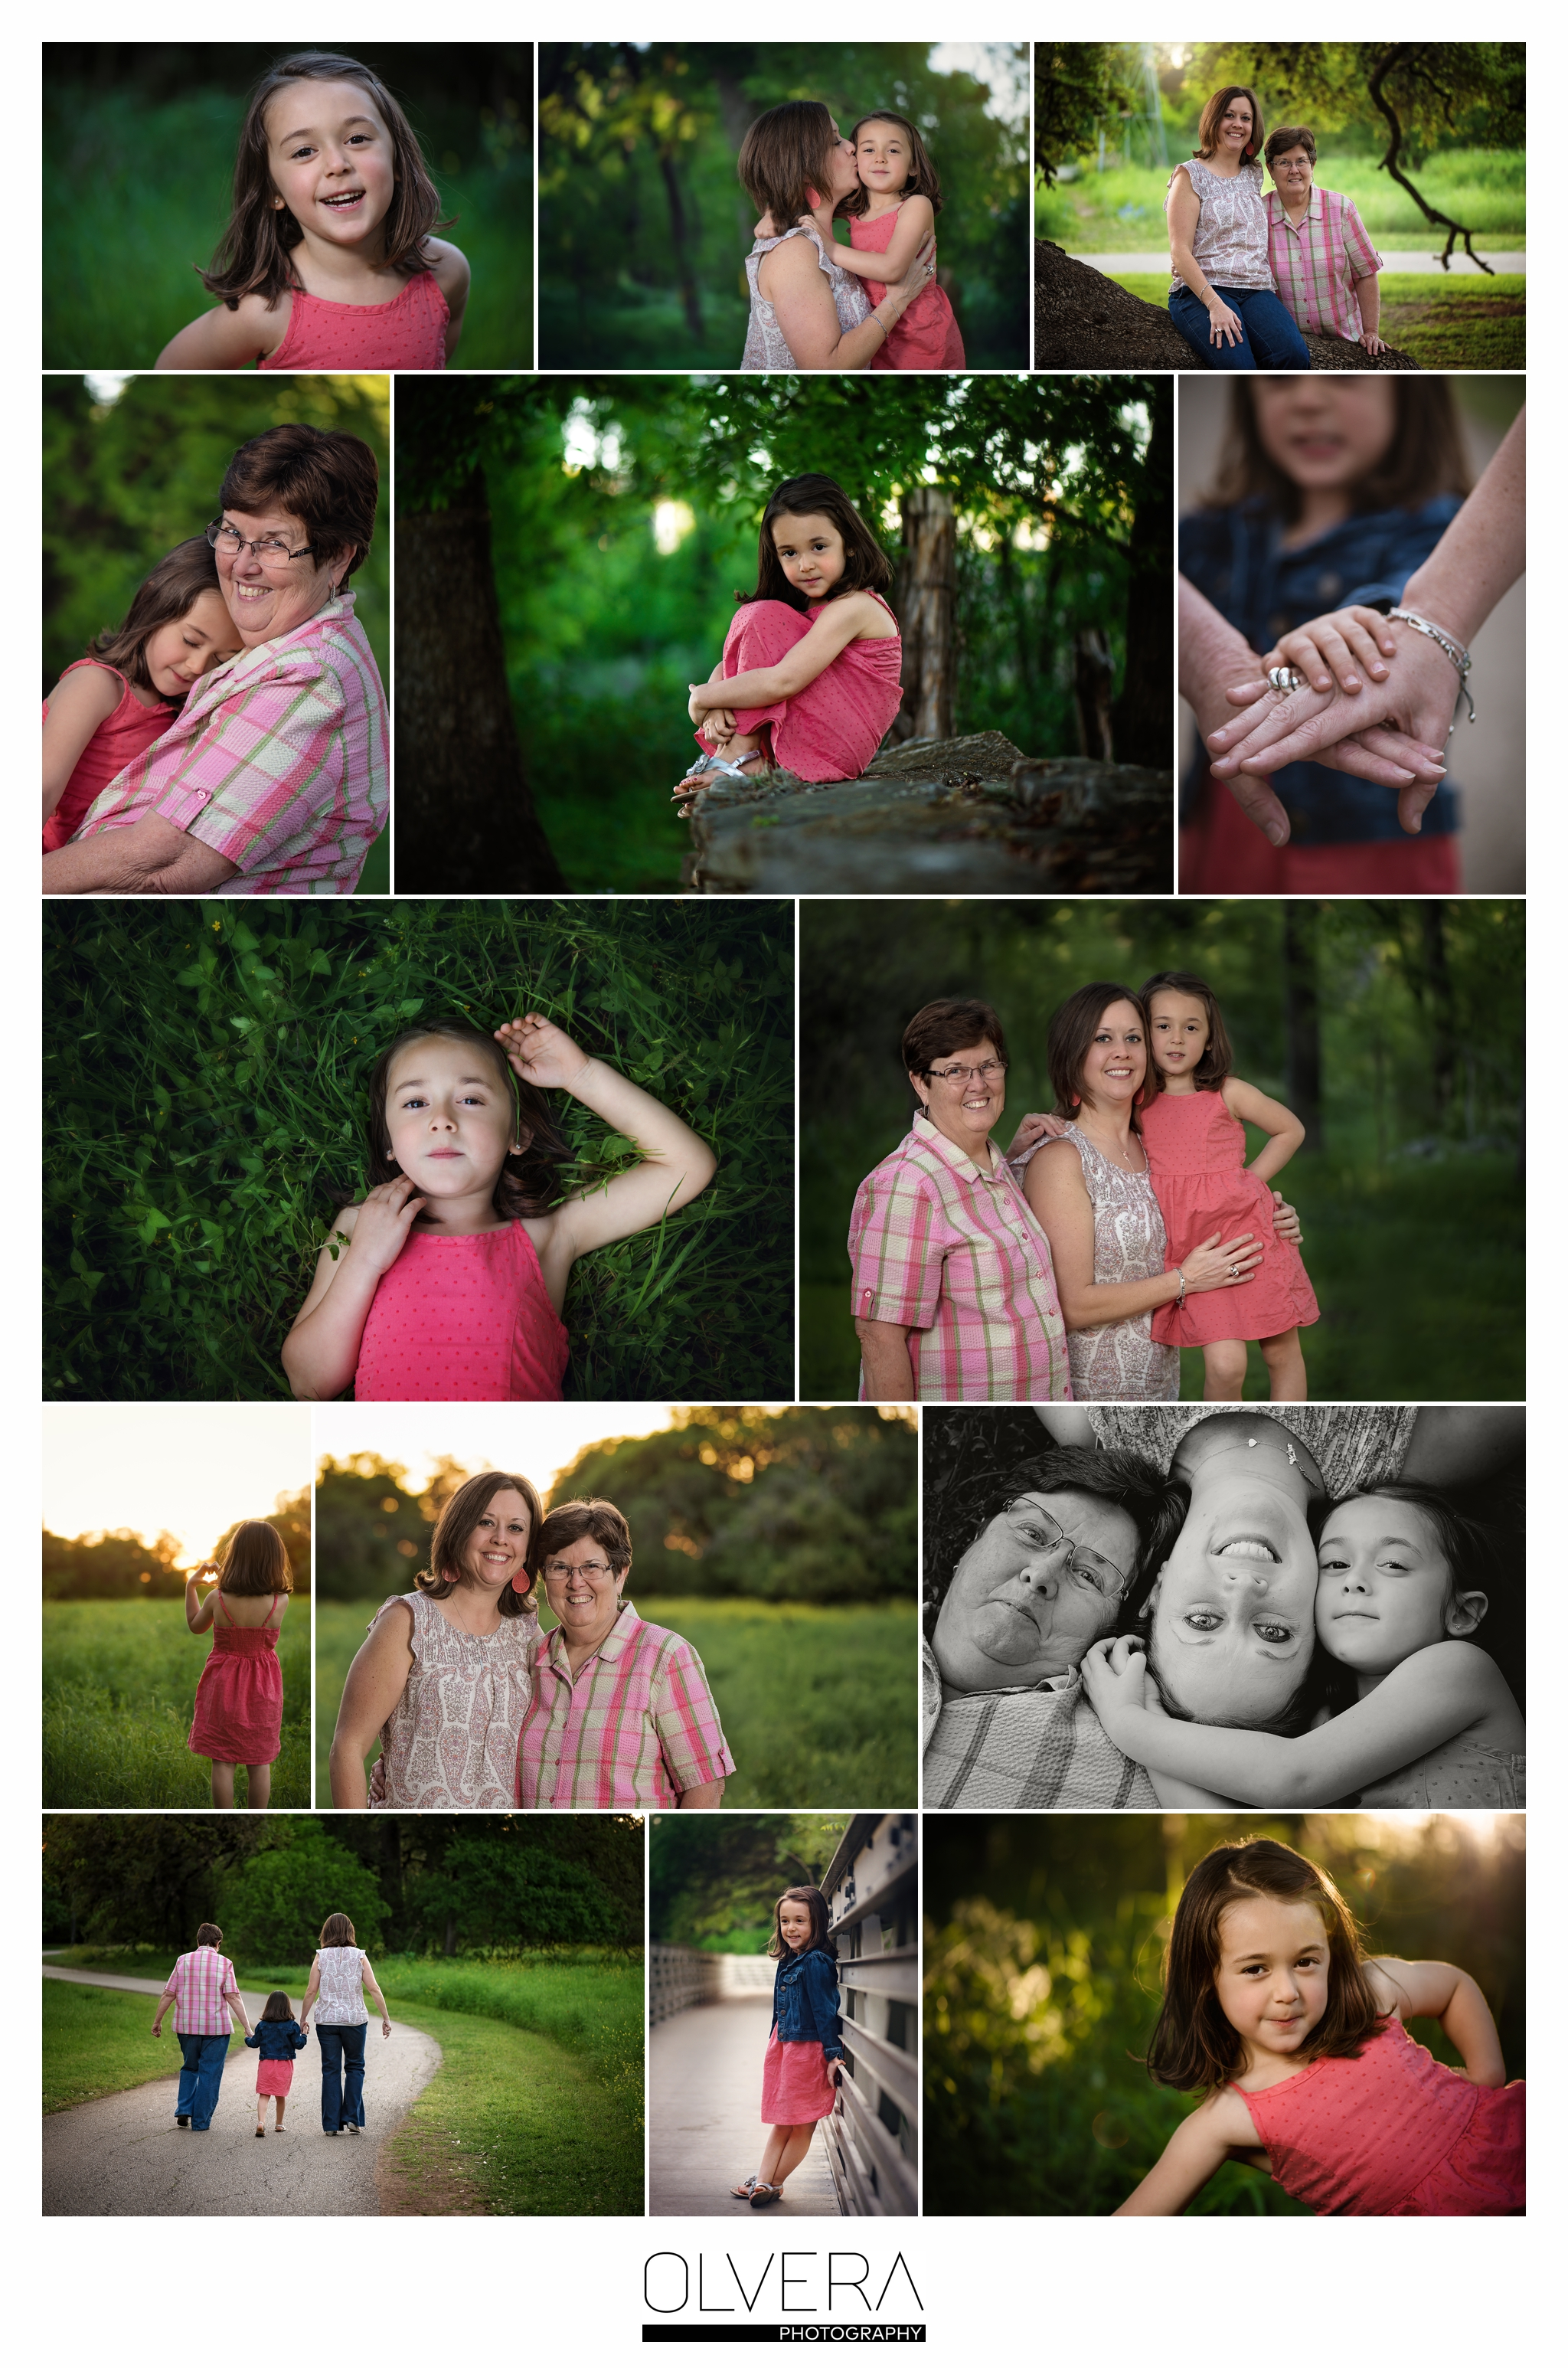 San Antonio Mother's Day 2016 Generational Photography